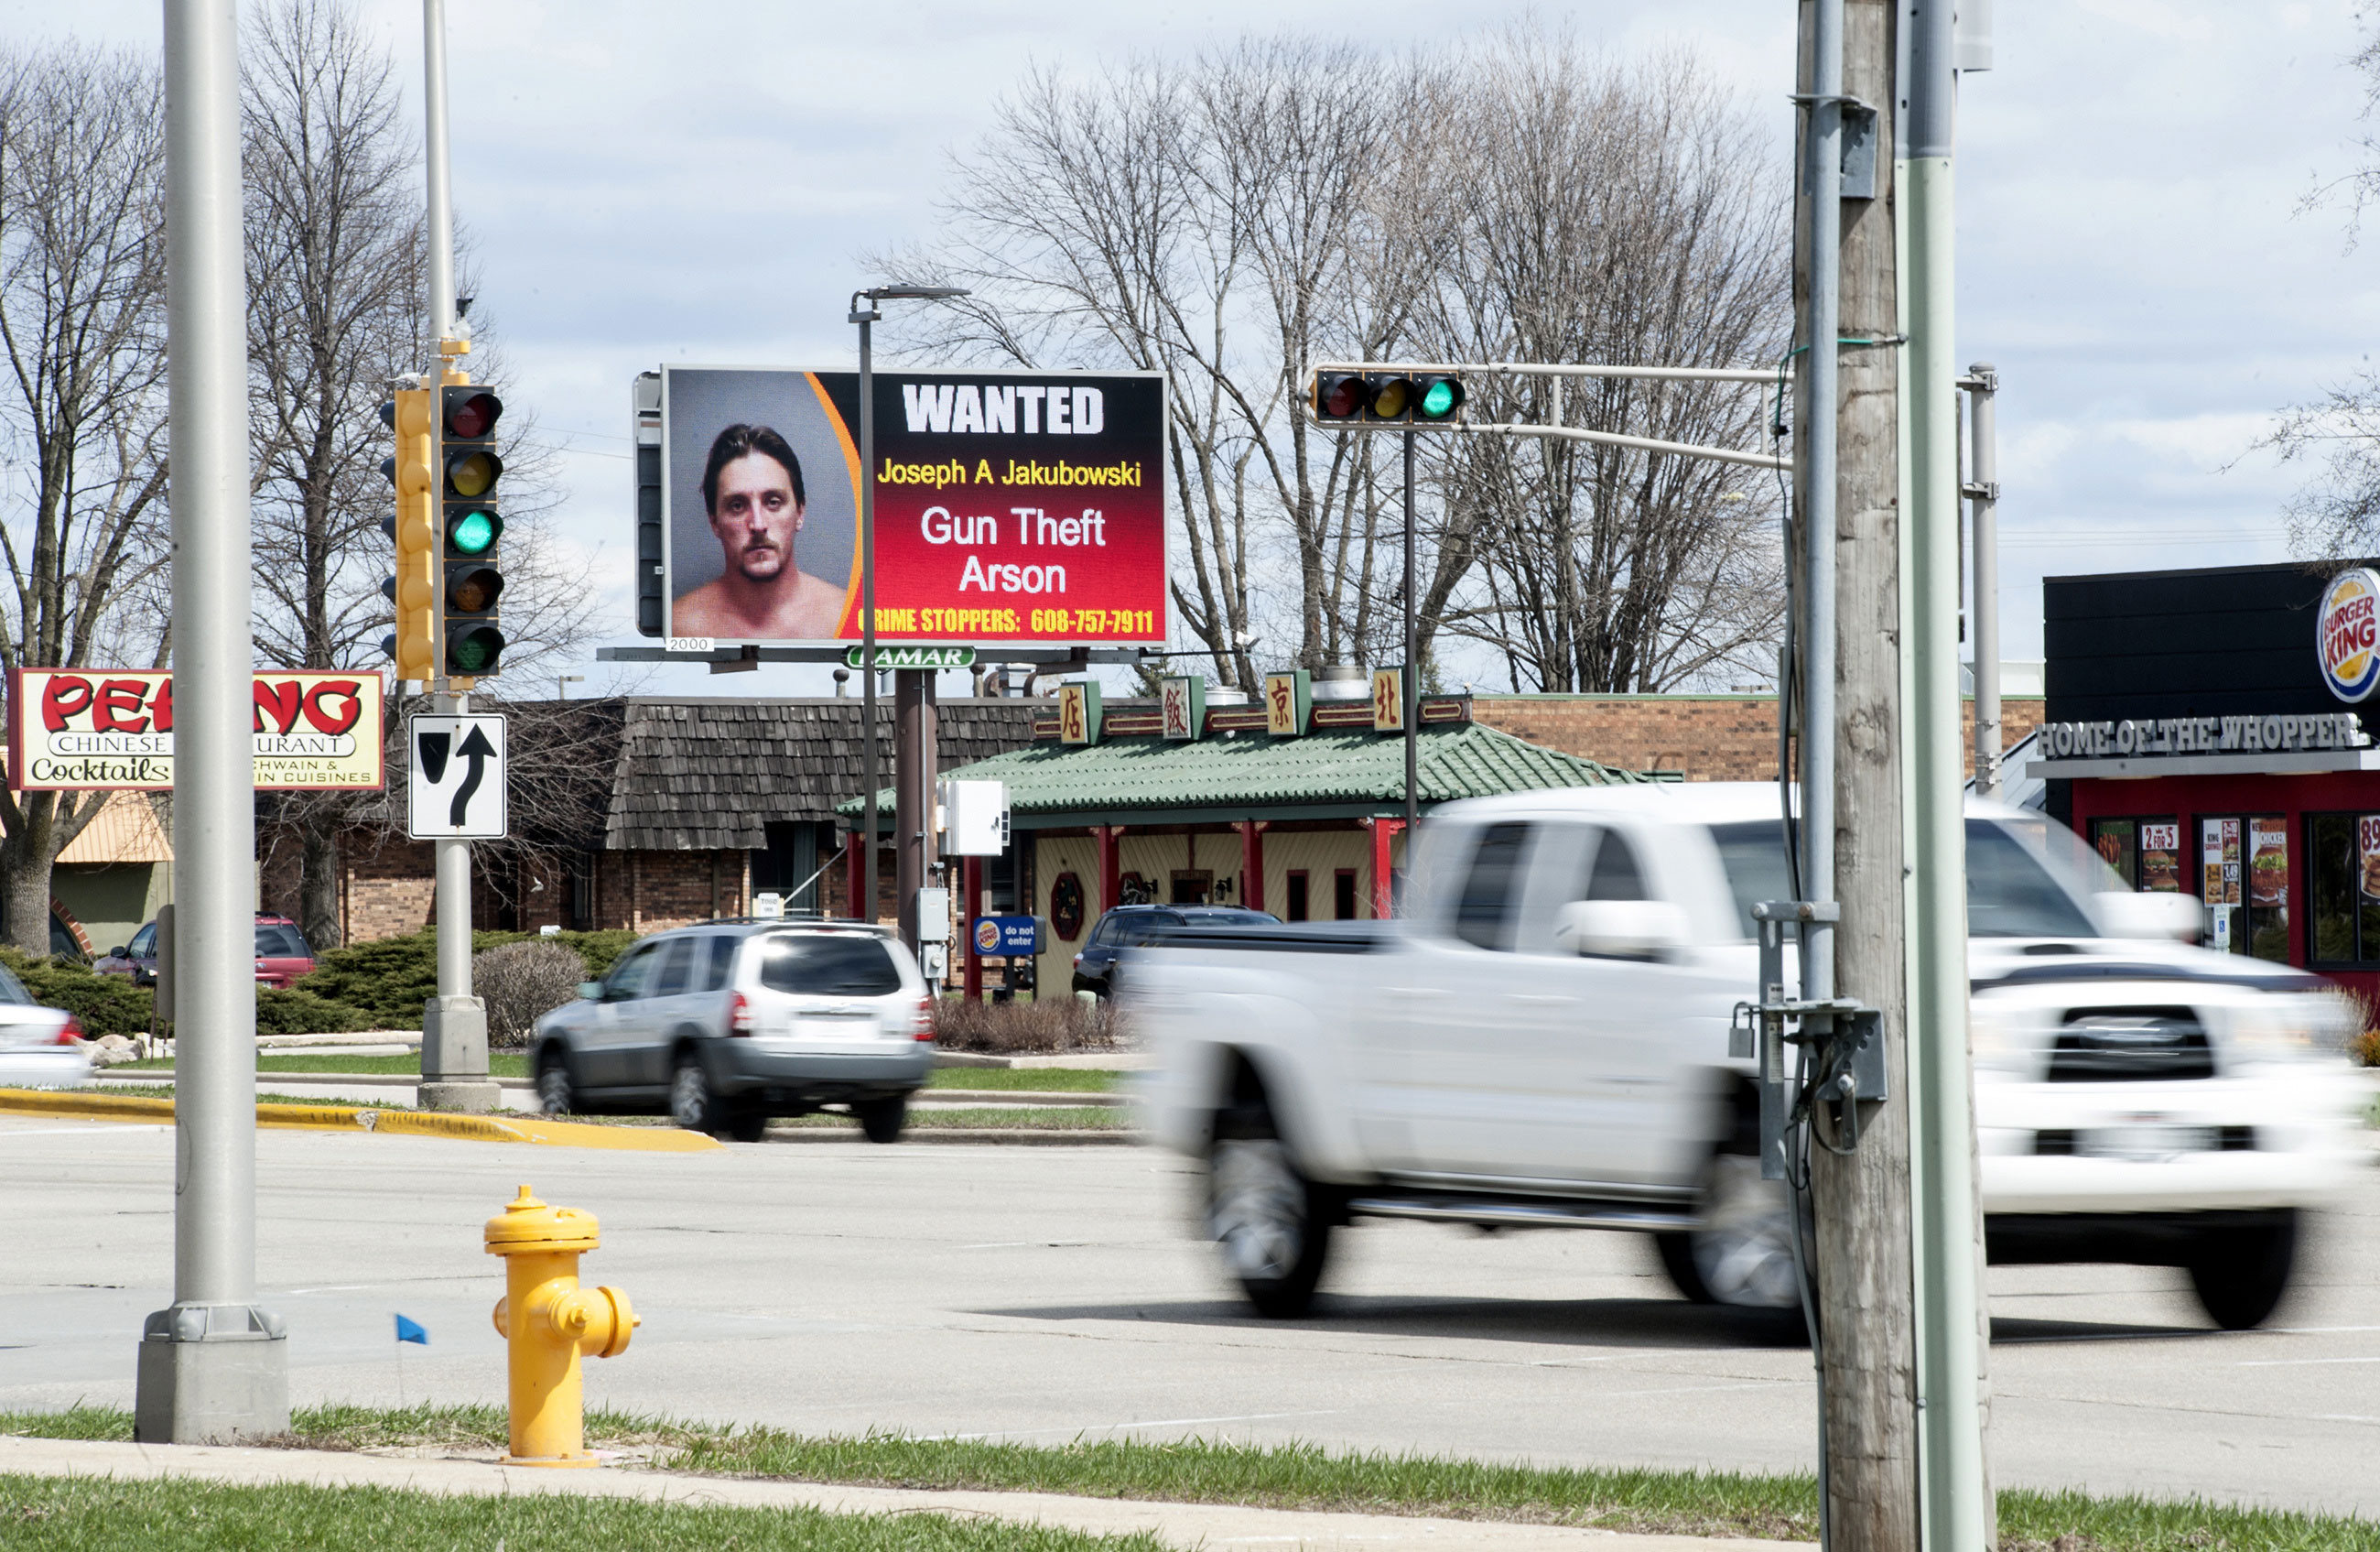 Vehicles drive by an electronic billboard in Janesville, Wis., showing a wanted sign for Joseph Jakubowski on April 6, 2017. A manhunt was underway Friday for Jakubowski suspected of stealing firearms from a southern Wisconsin gun store, threatening an unspecified attack that prompted several schools to close, and sending an anti-government manifesto to President Donald Trump.